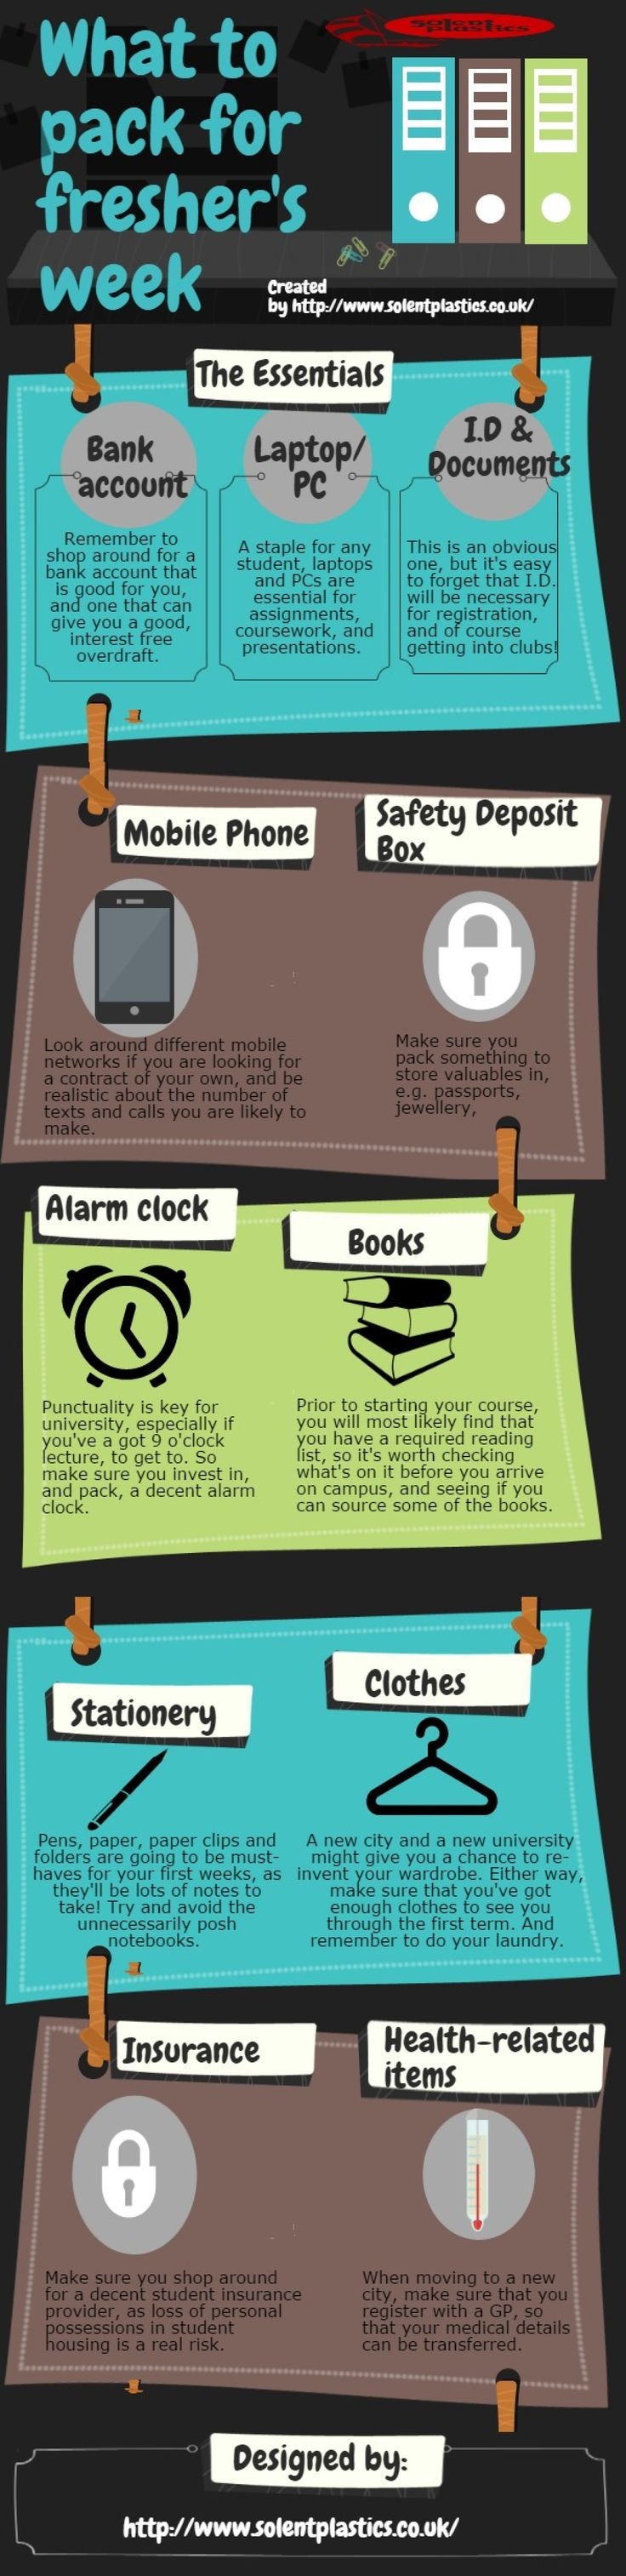 83 best Student life tips images on Pinterest | Productivity ...